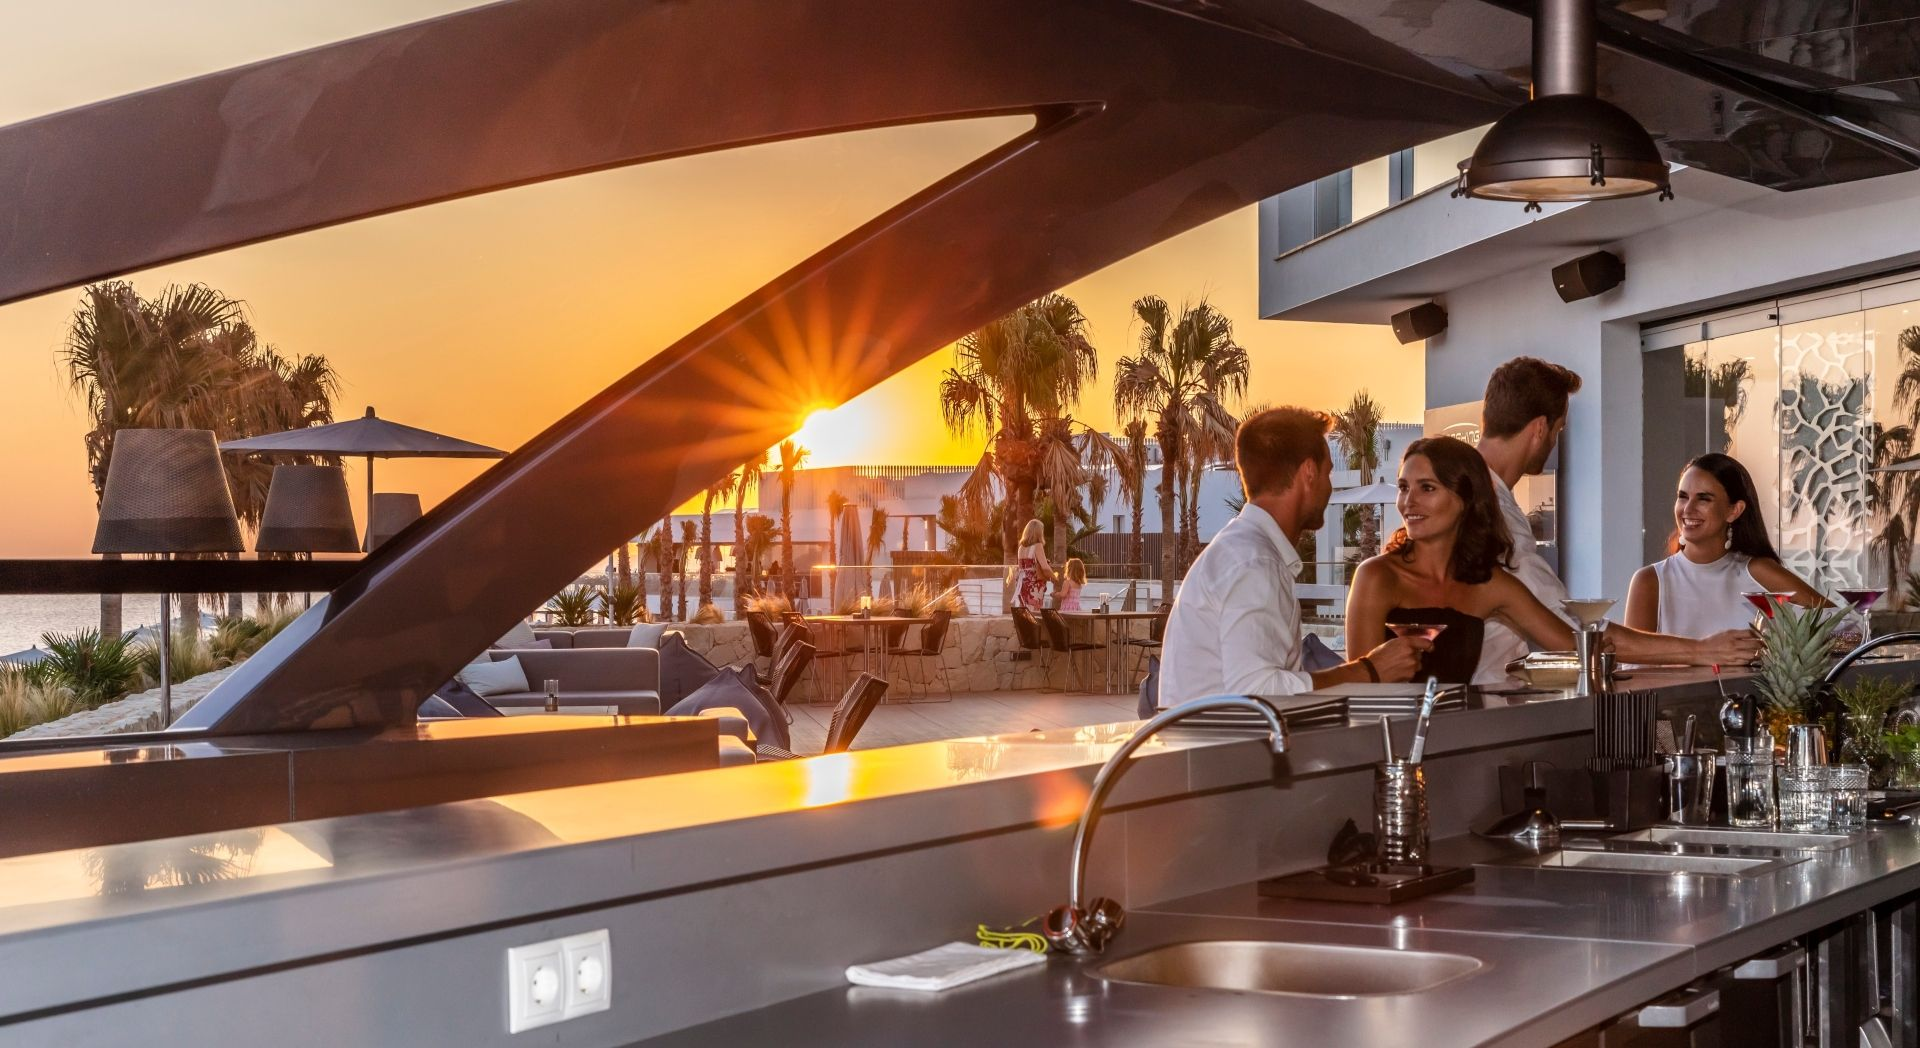 Pershing Yacht Terrace drinks